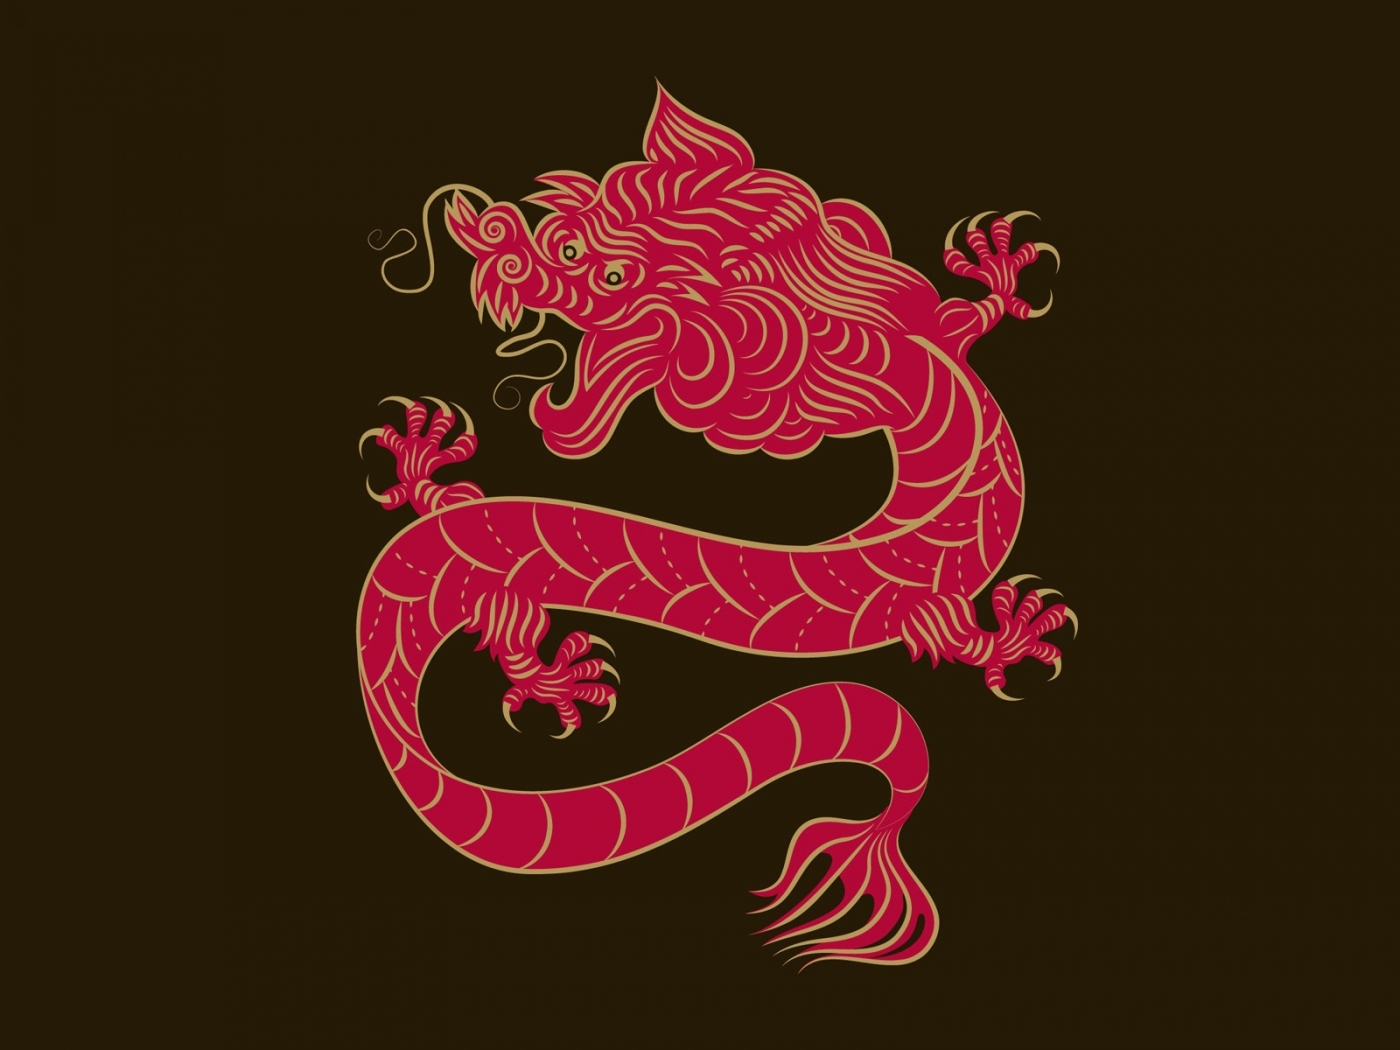 38859 Screensavers and Wallpapers Dragons for phone. Download Background, Dragons pictures for free